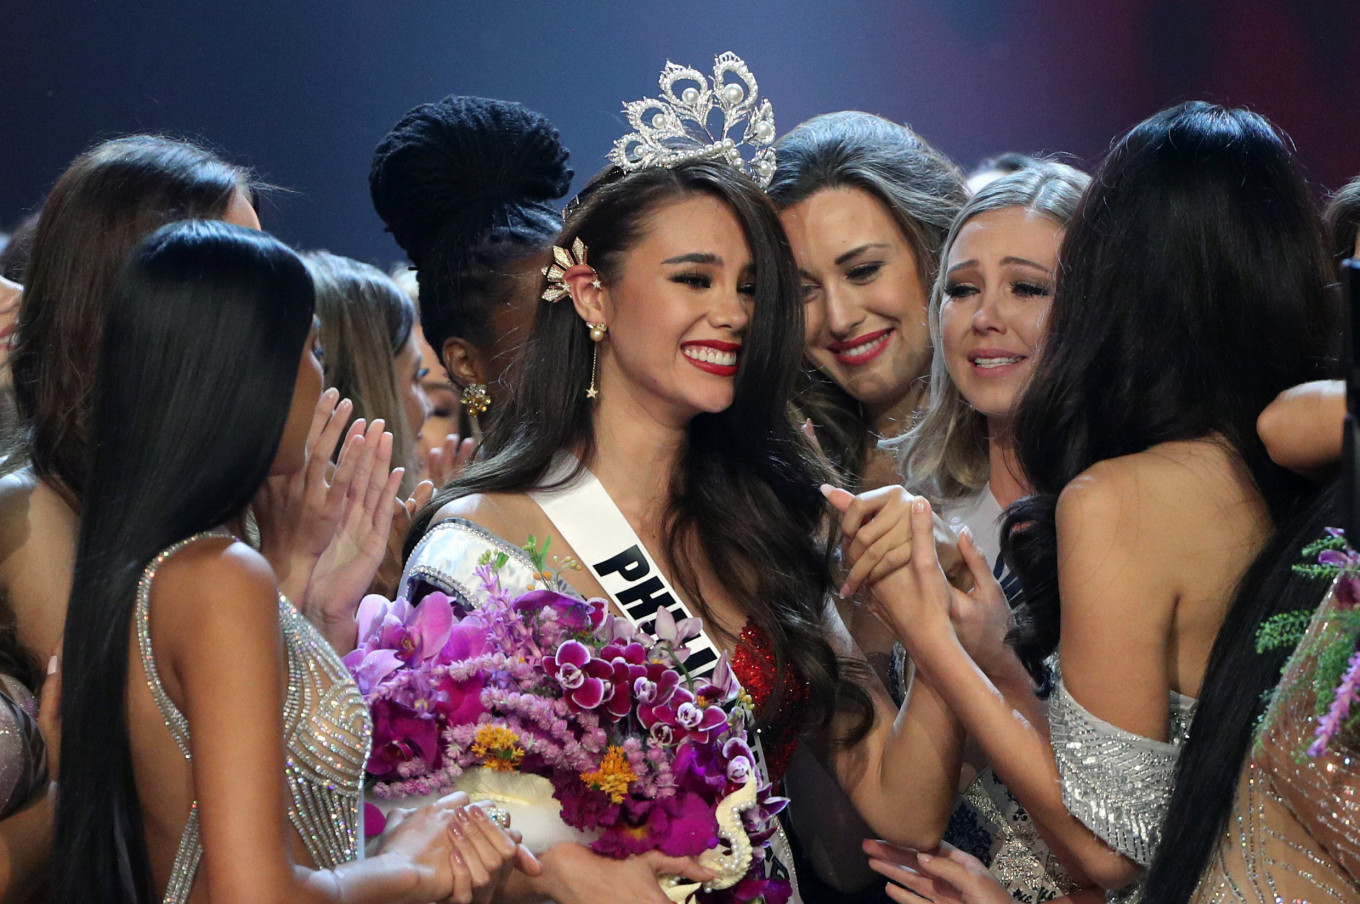 Australians dispute Miss Universe Catriona Gray's win